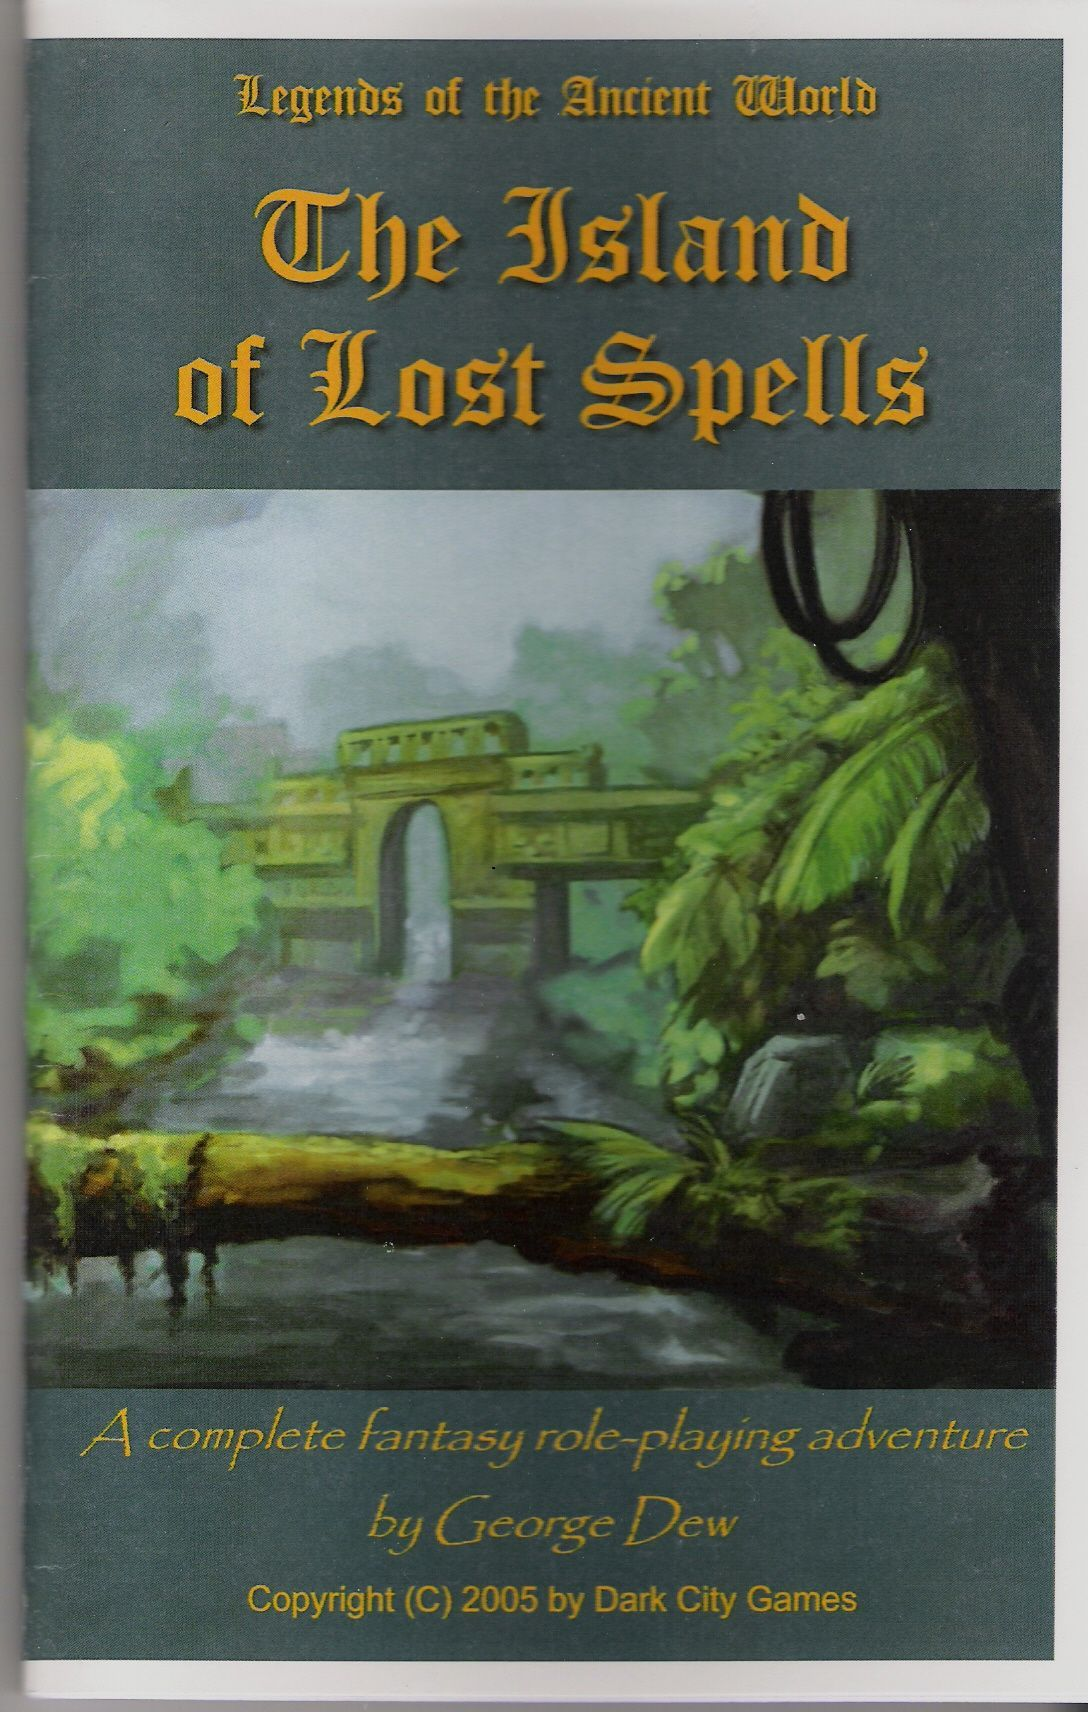 Legends of the Ancient World: The Island of Lost Spells